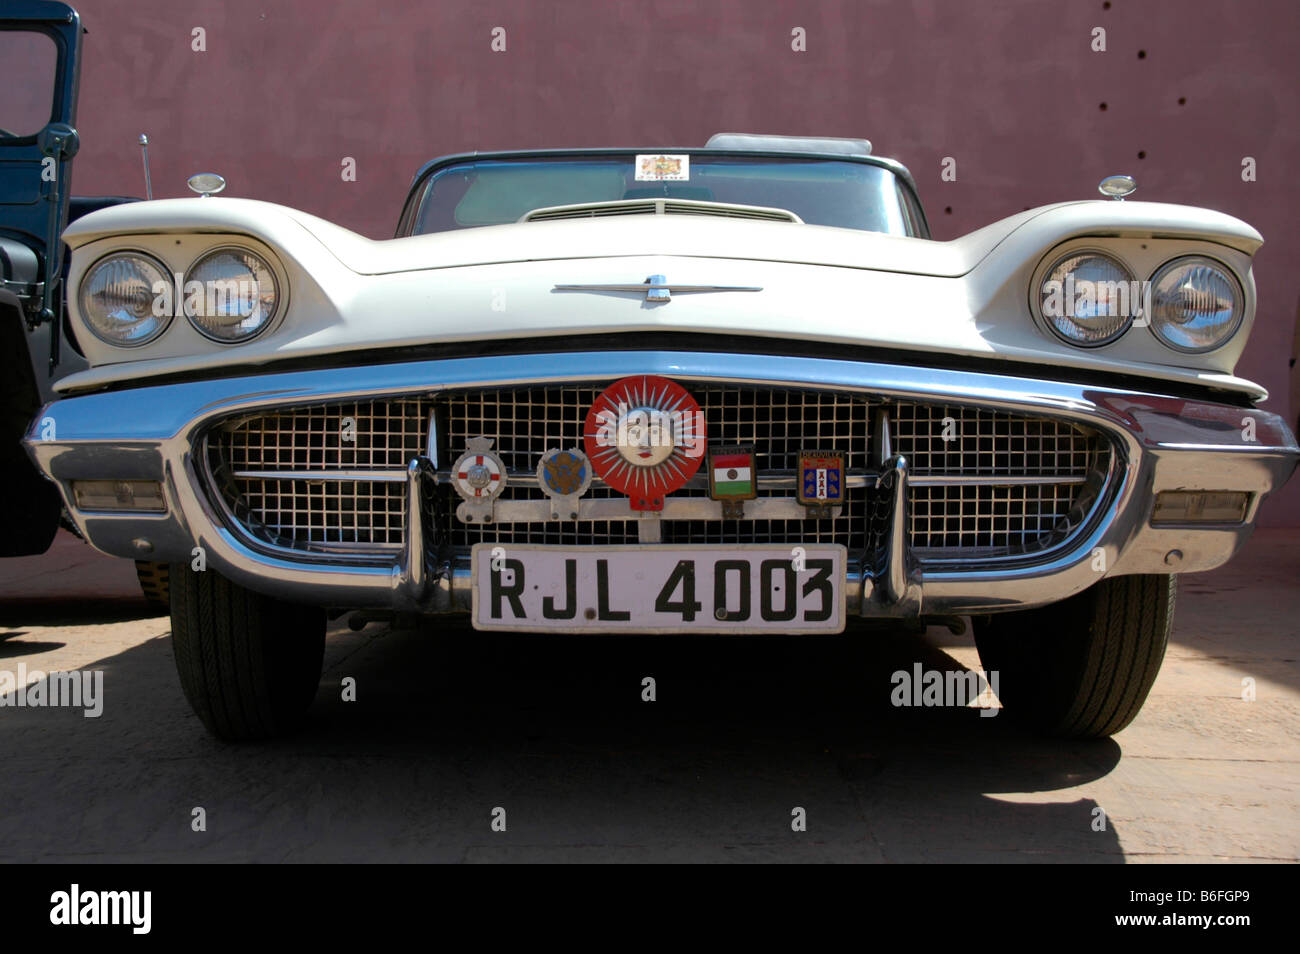 Magnificent Classic Car Plates Photos - Classic Cars Ideas - boiq.info